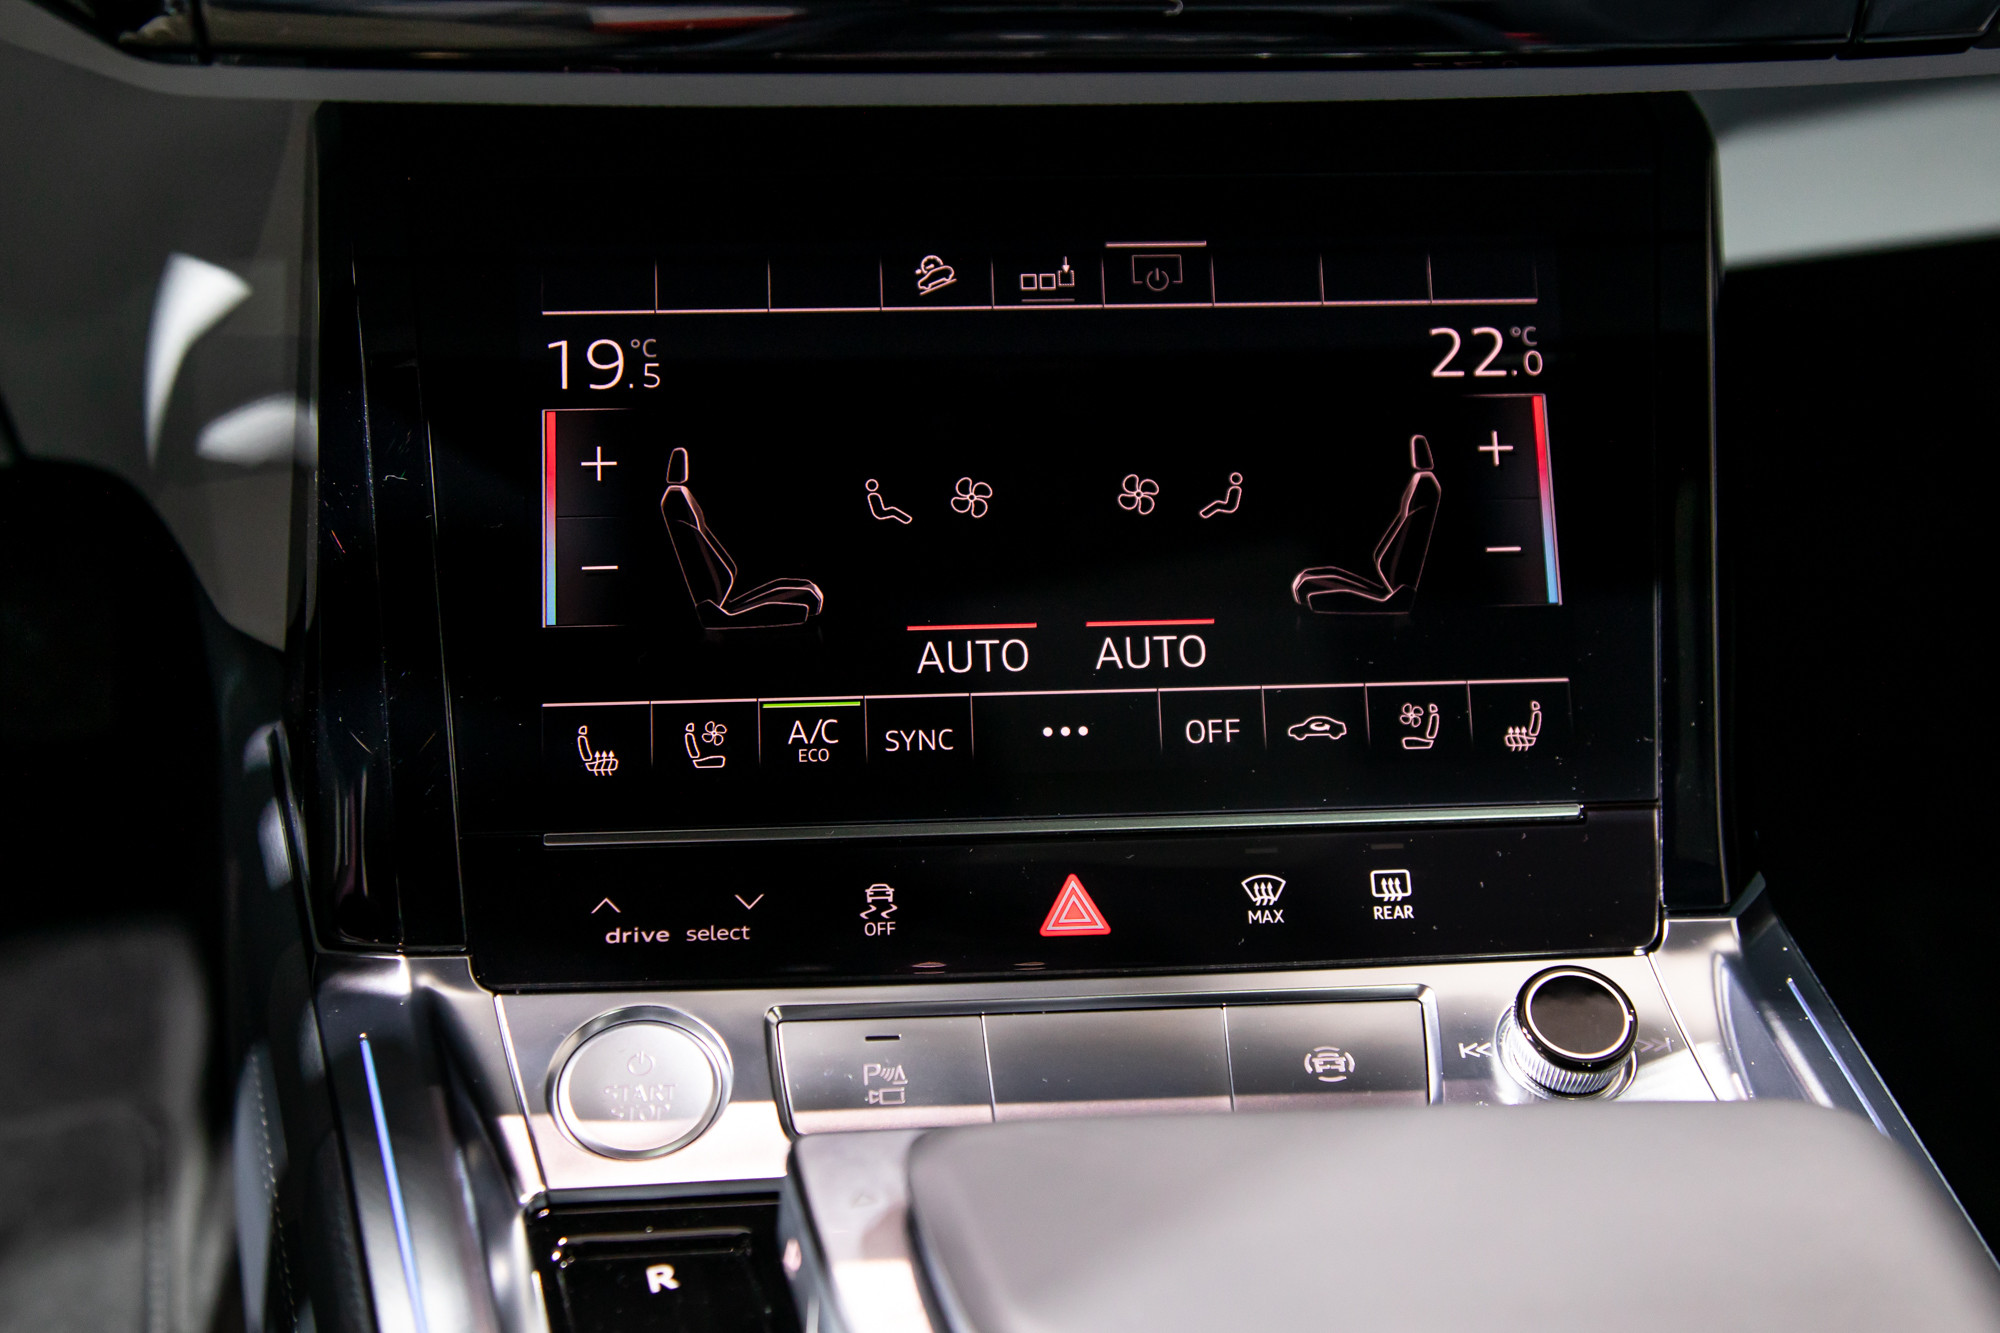 audi-e-tron-sportback-2020-15-center-stack-display--climate-control--interior.jpg